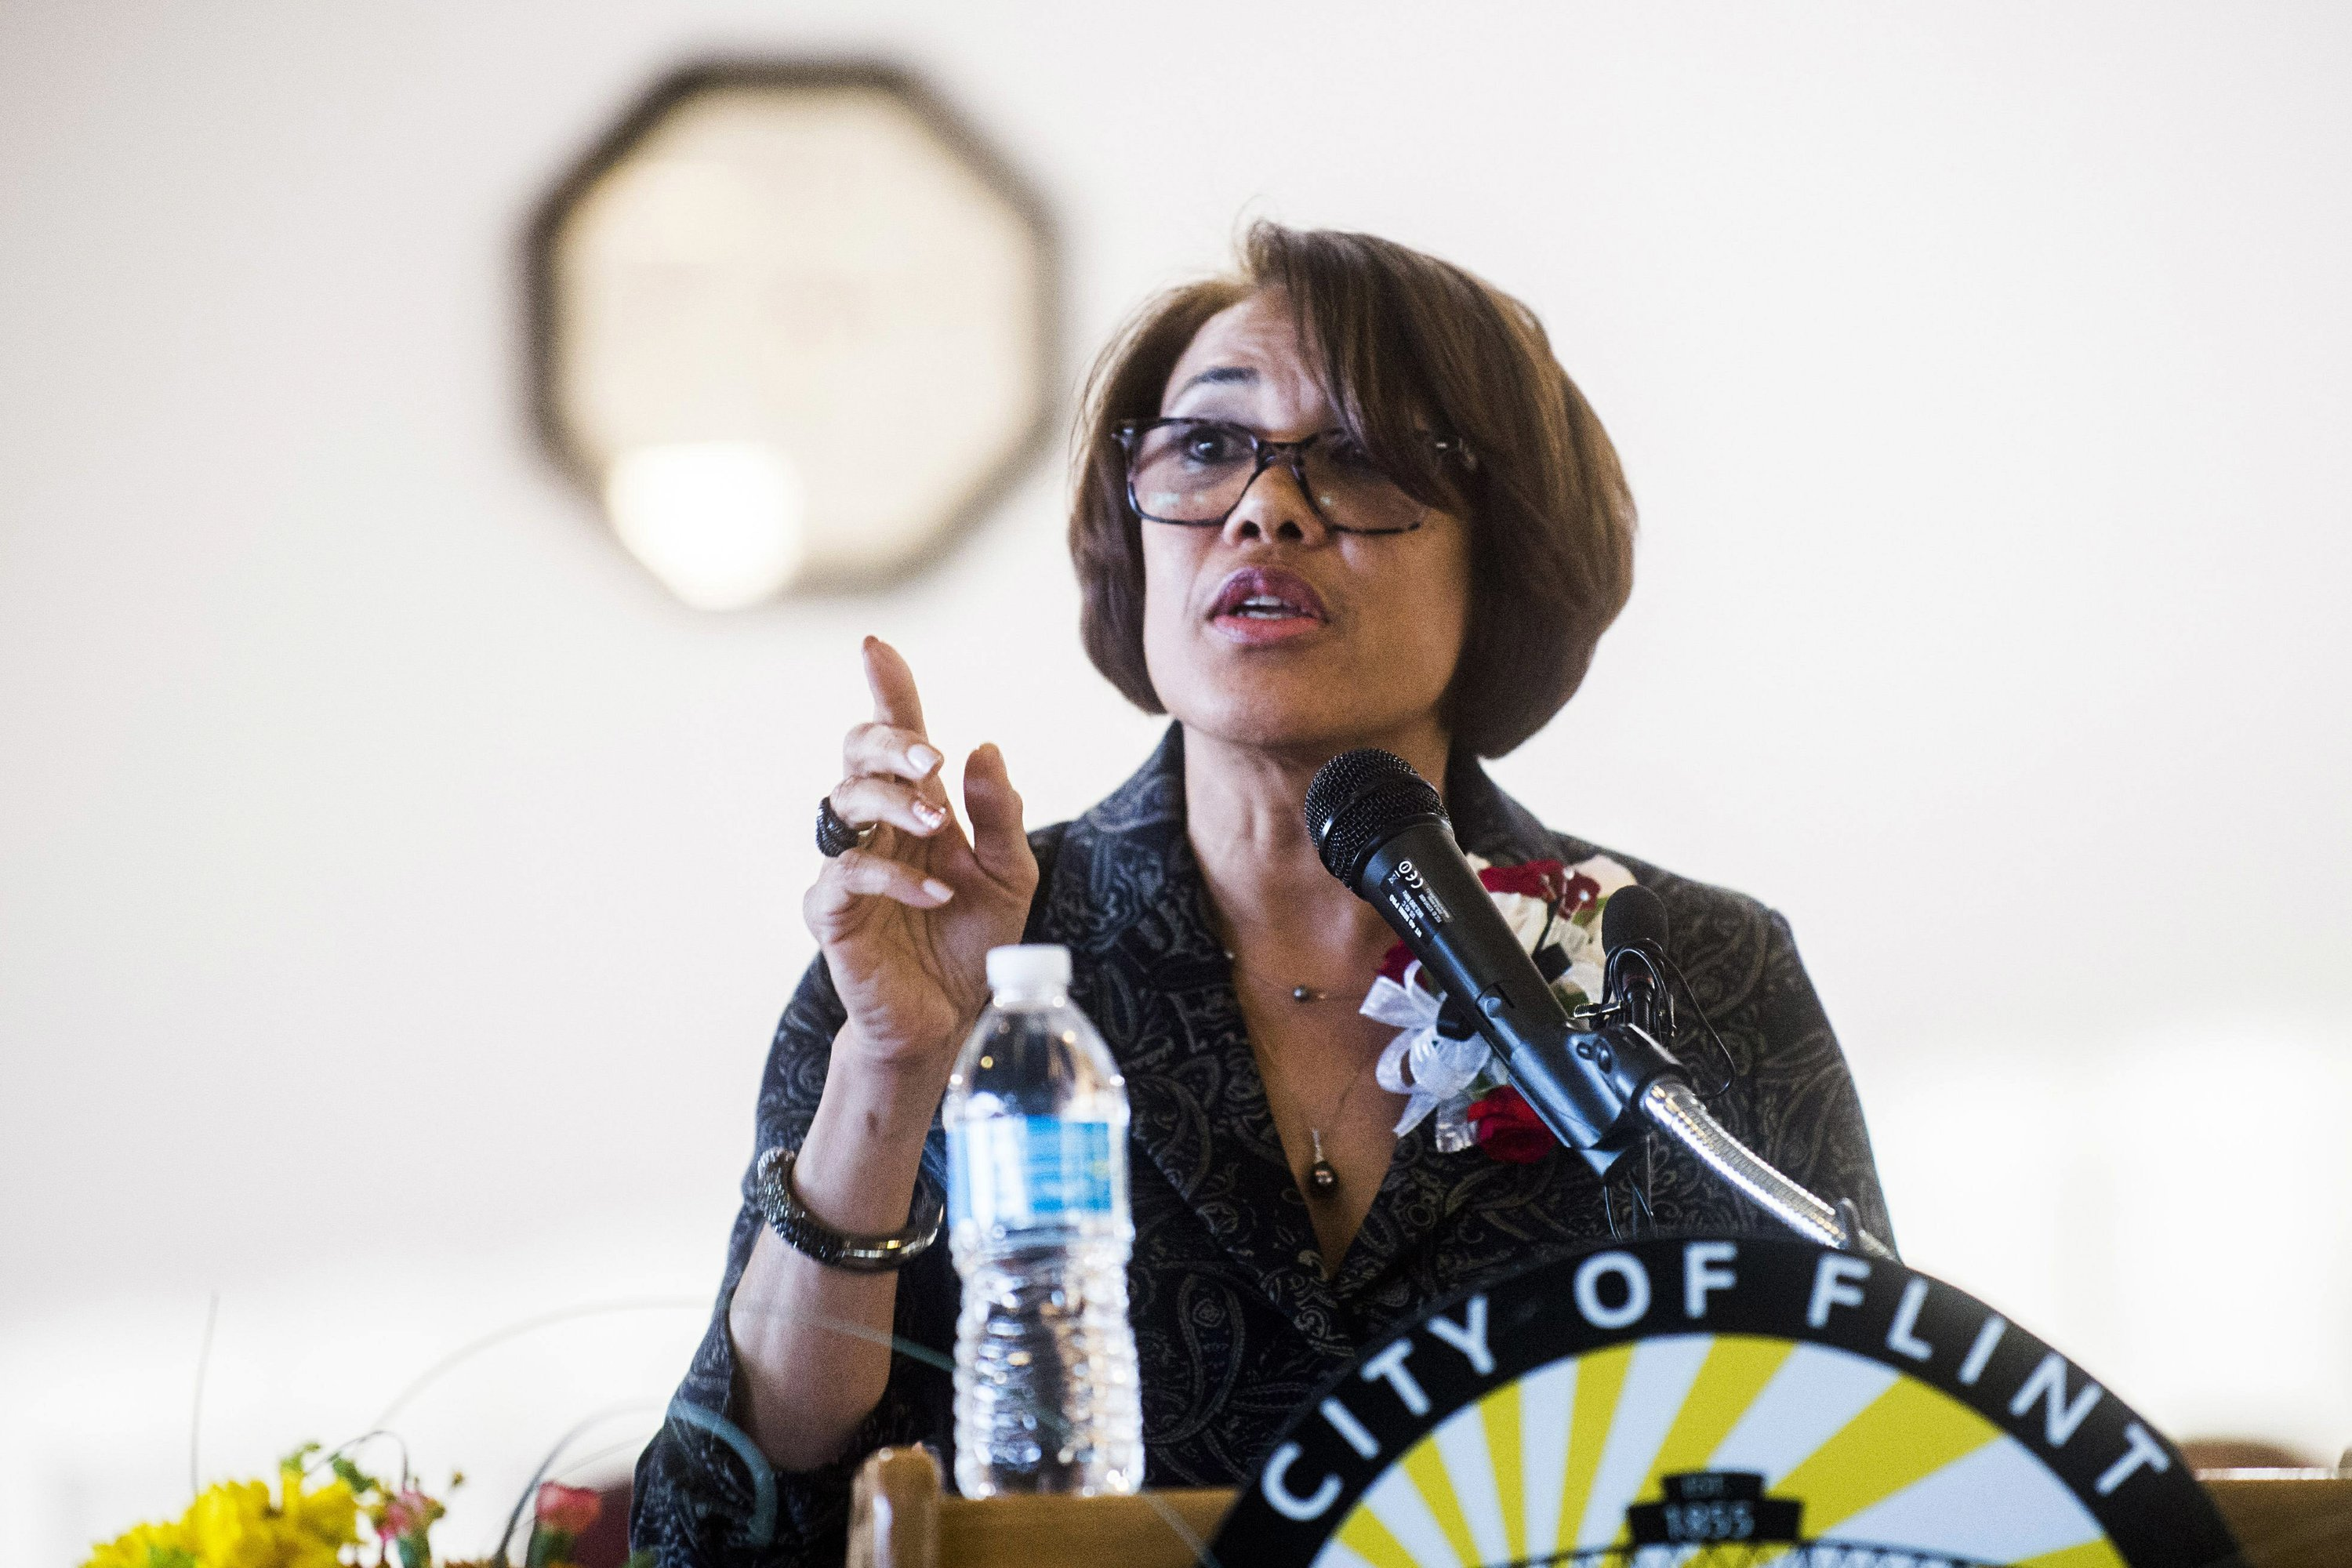 Incumbent Weaver survives recall, remains Flint's mayor